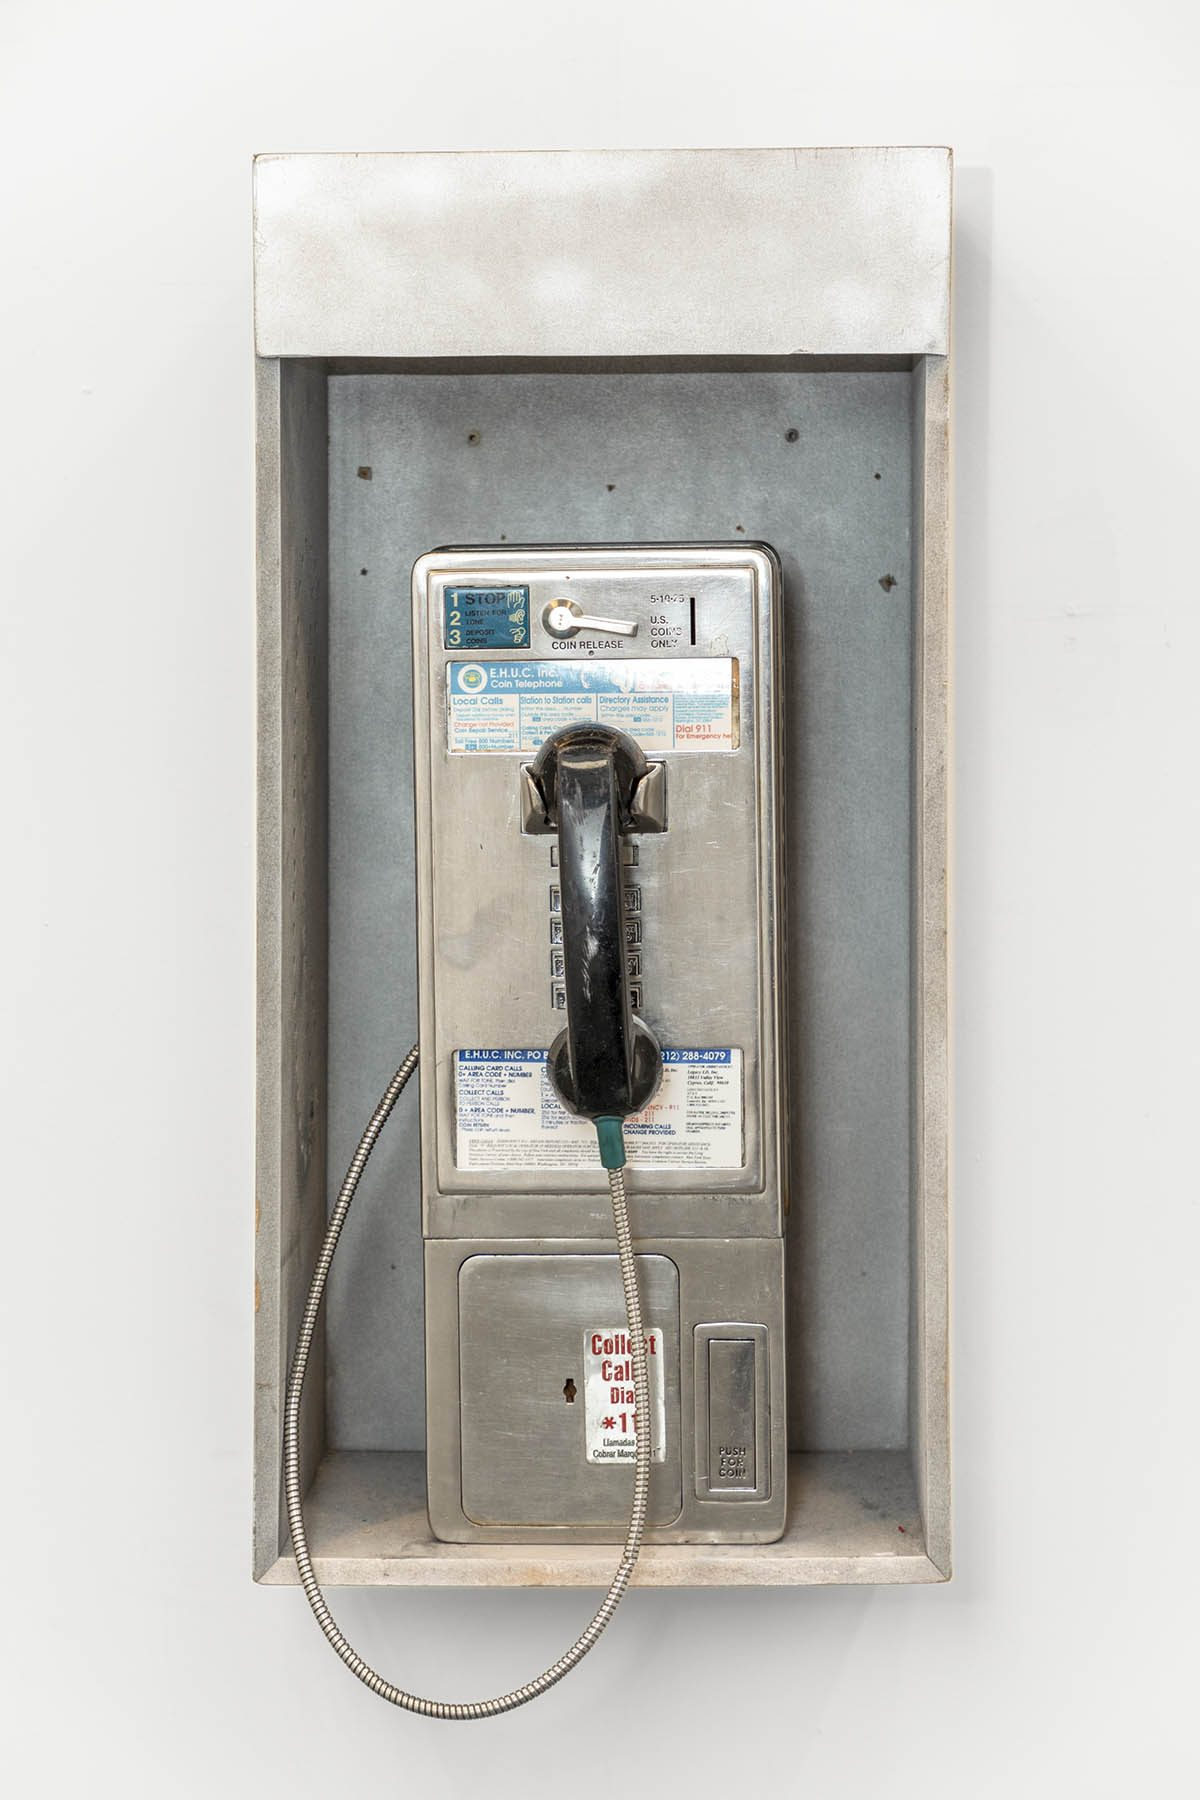 Sculpture of an old fashioned payphone